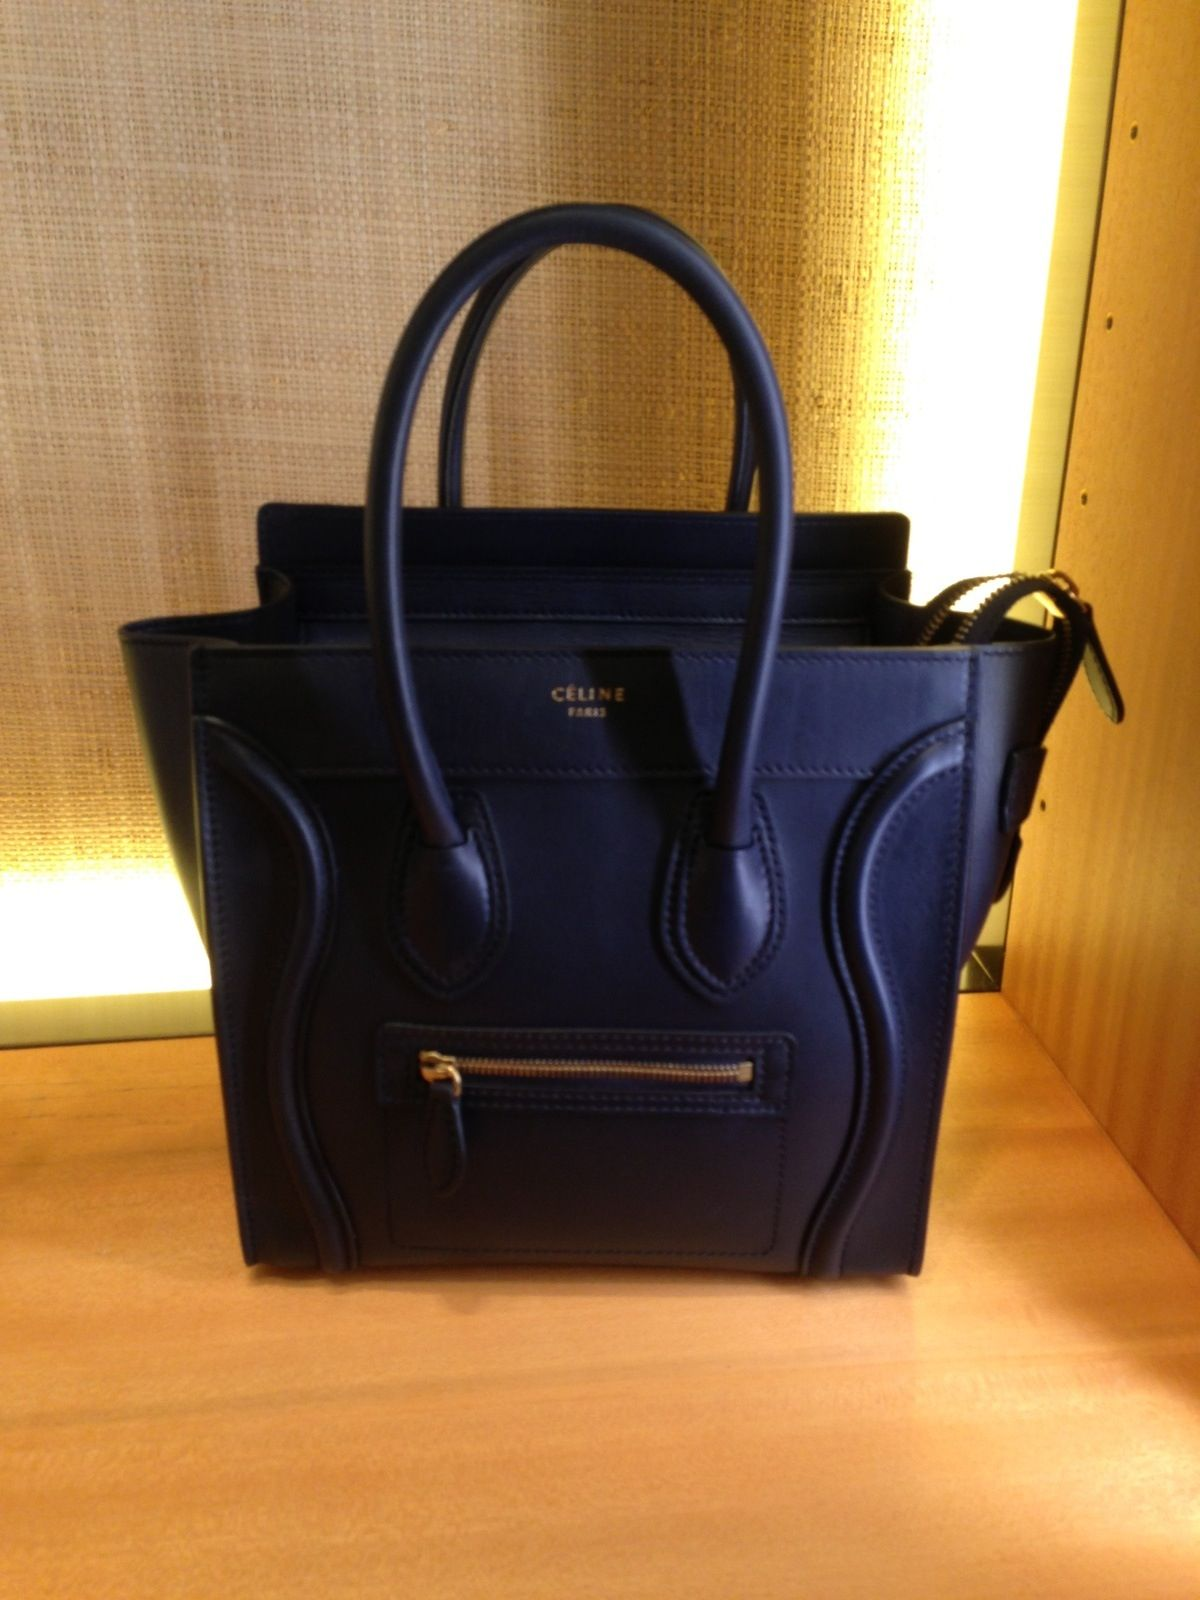 Celine Micro At Barneys Hy Day Purse Bag